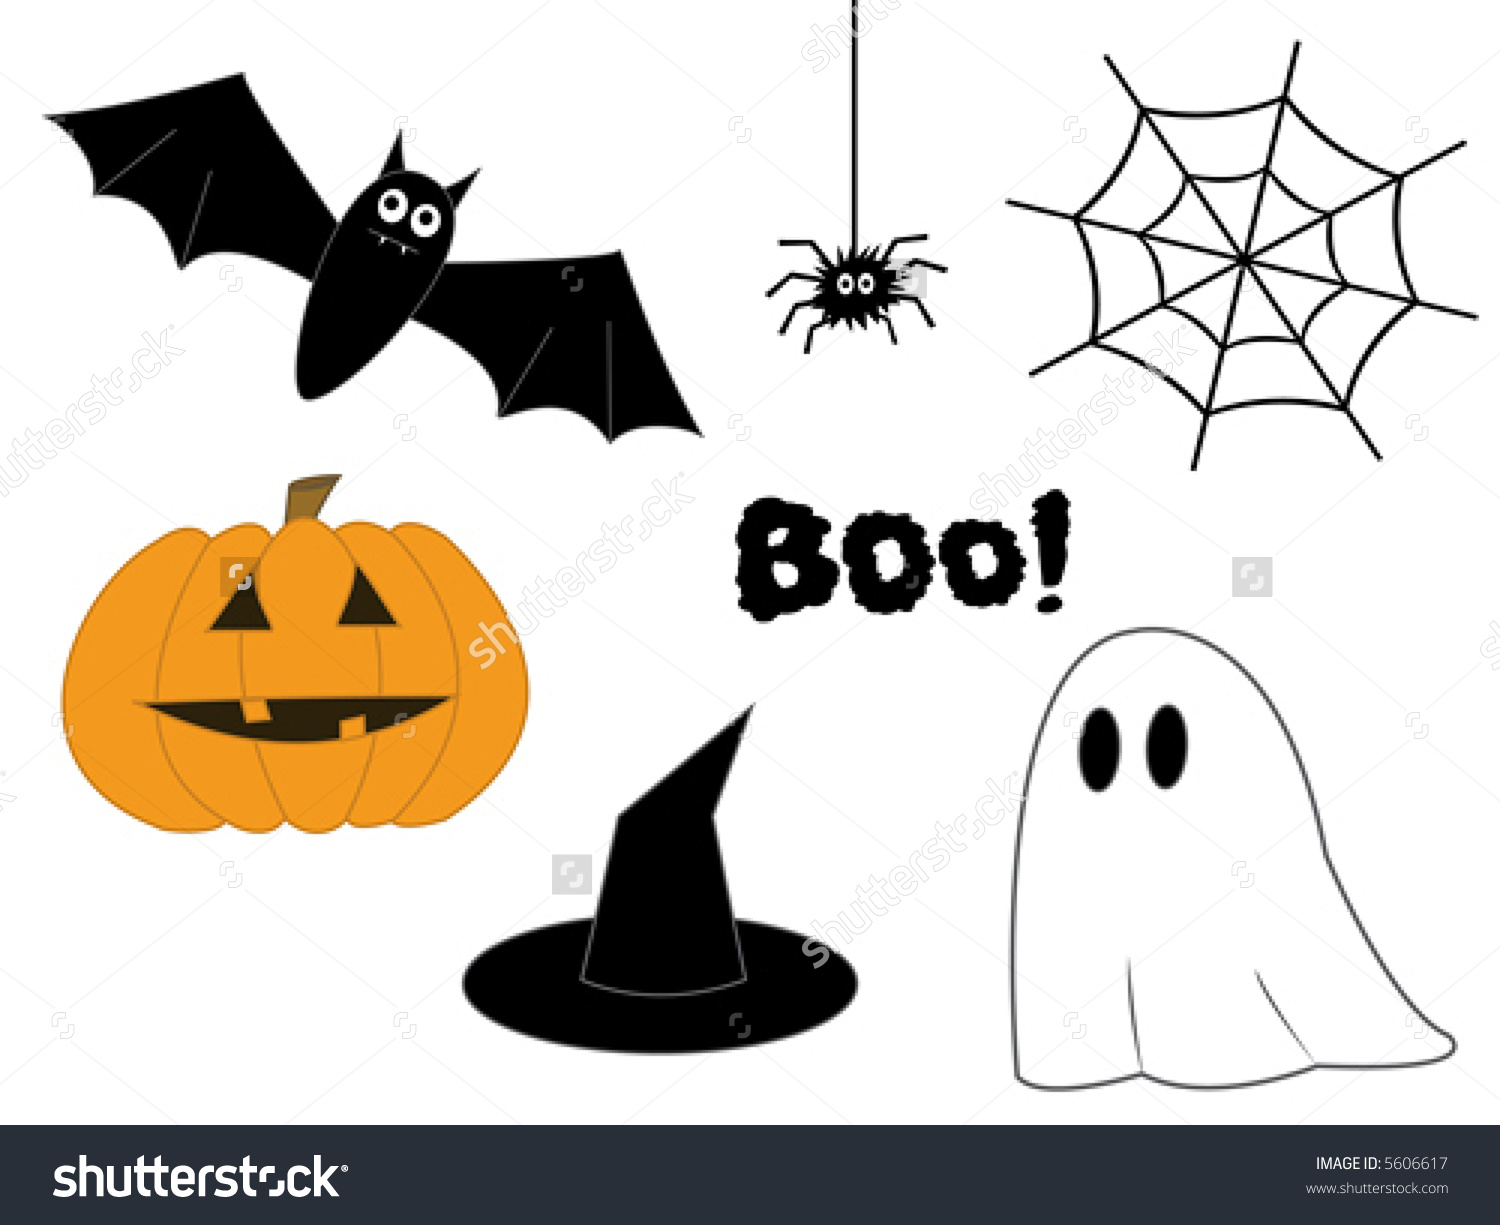 Halloween Clipart Pumpkin Bat Spider Web Stock Vector 5606617.